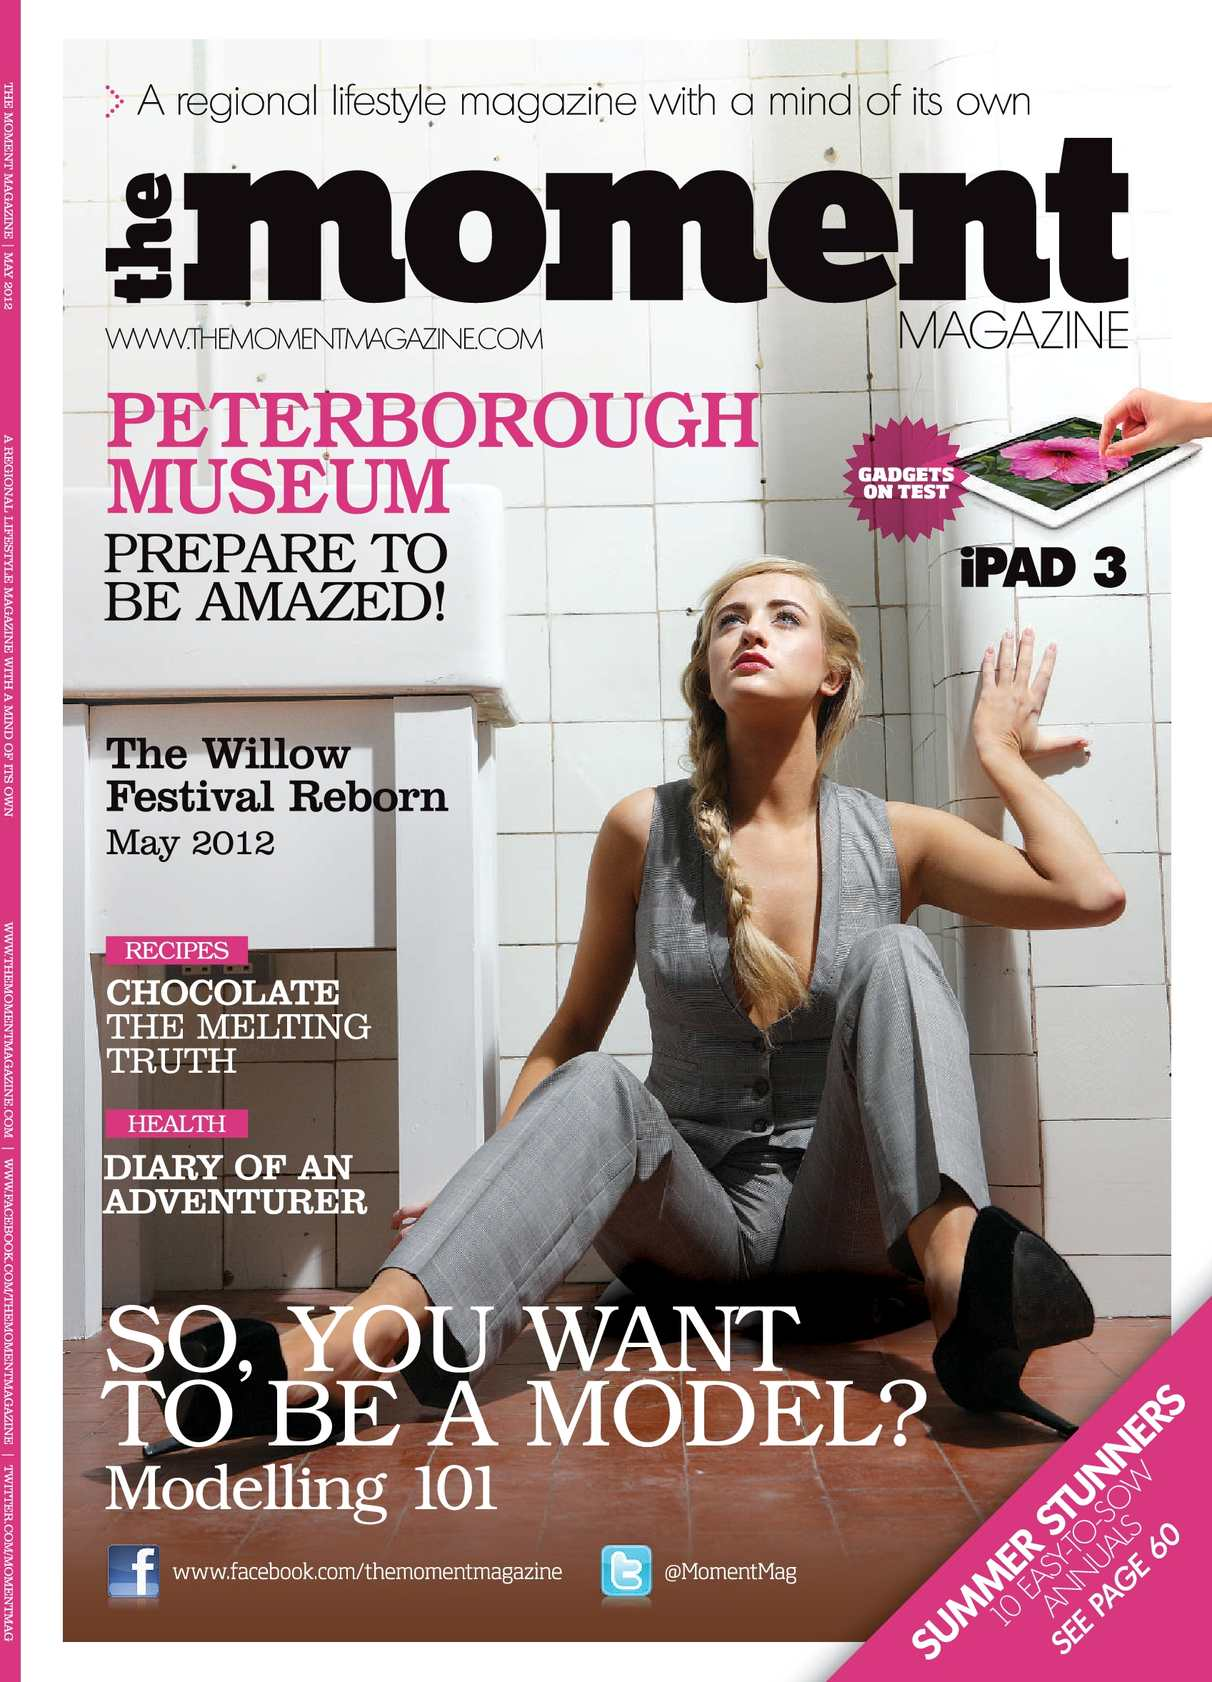 6b740146a21 Calaméo - The Moment Magazine - May 2012 - Issue 9